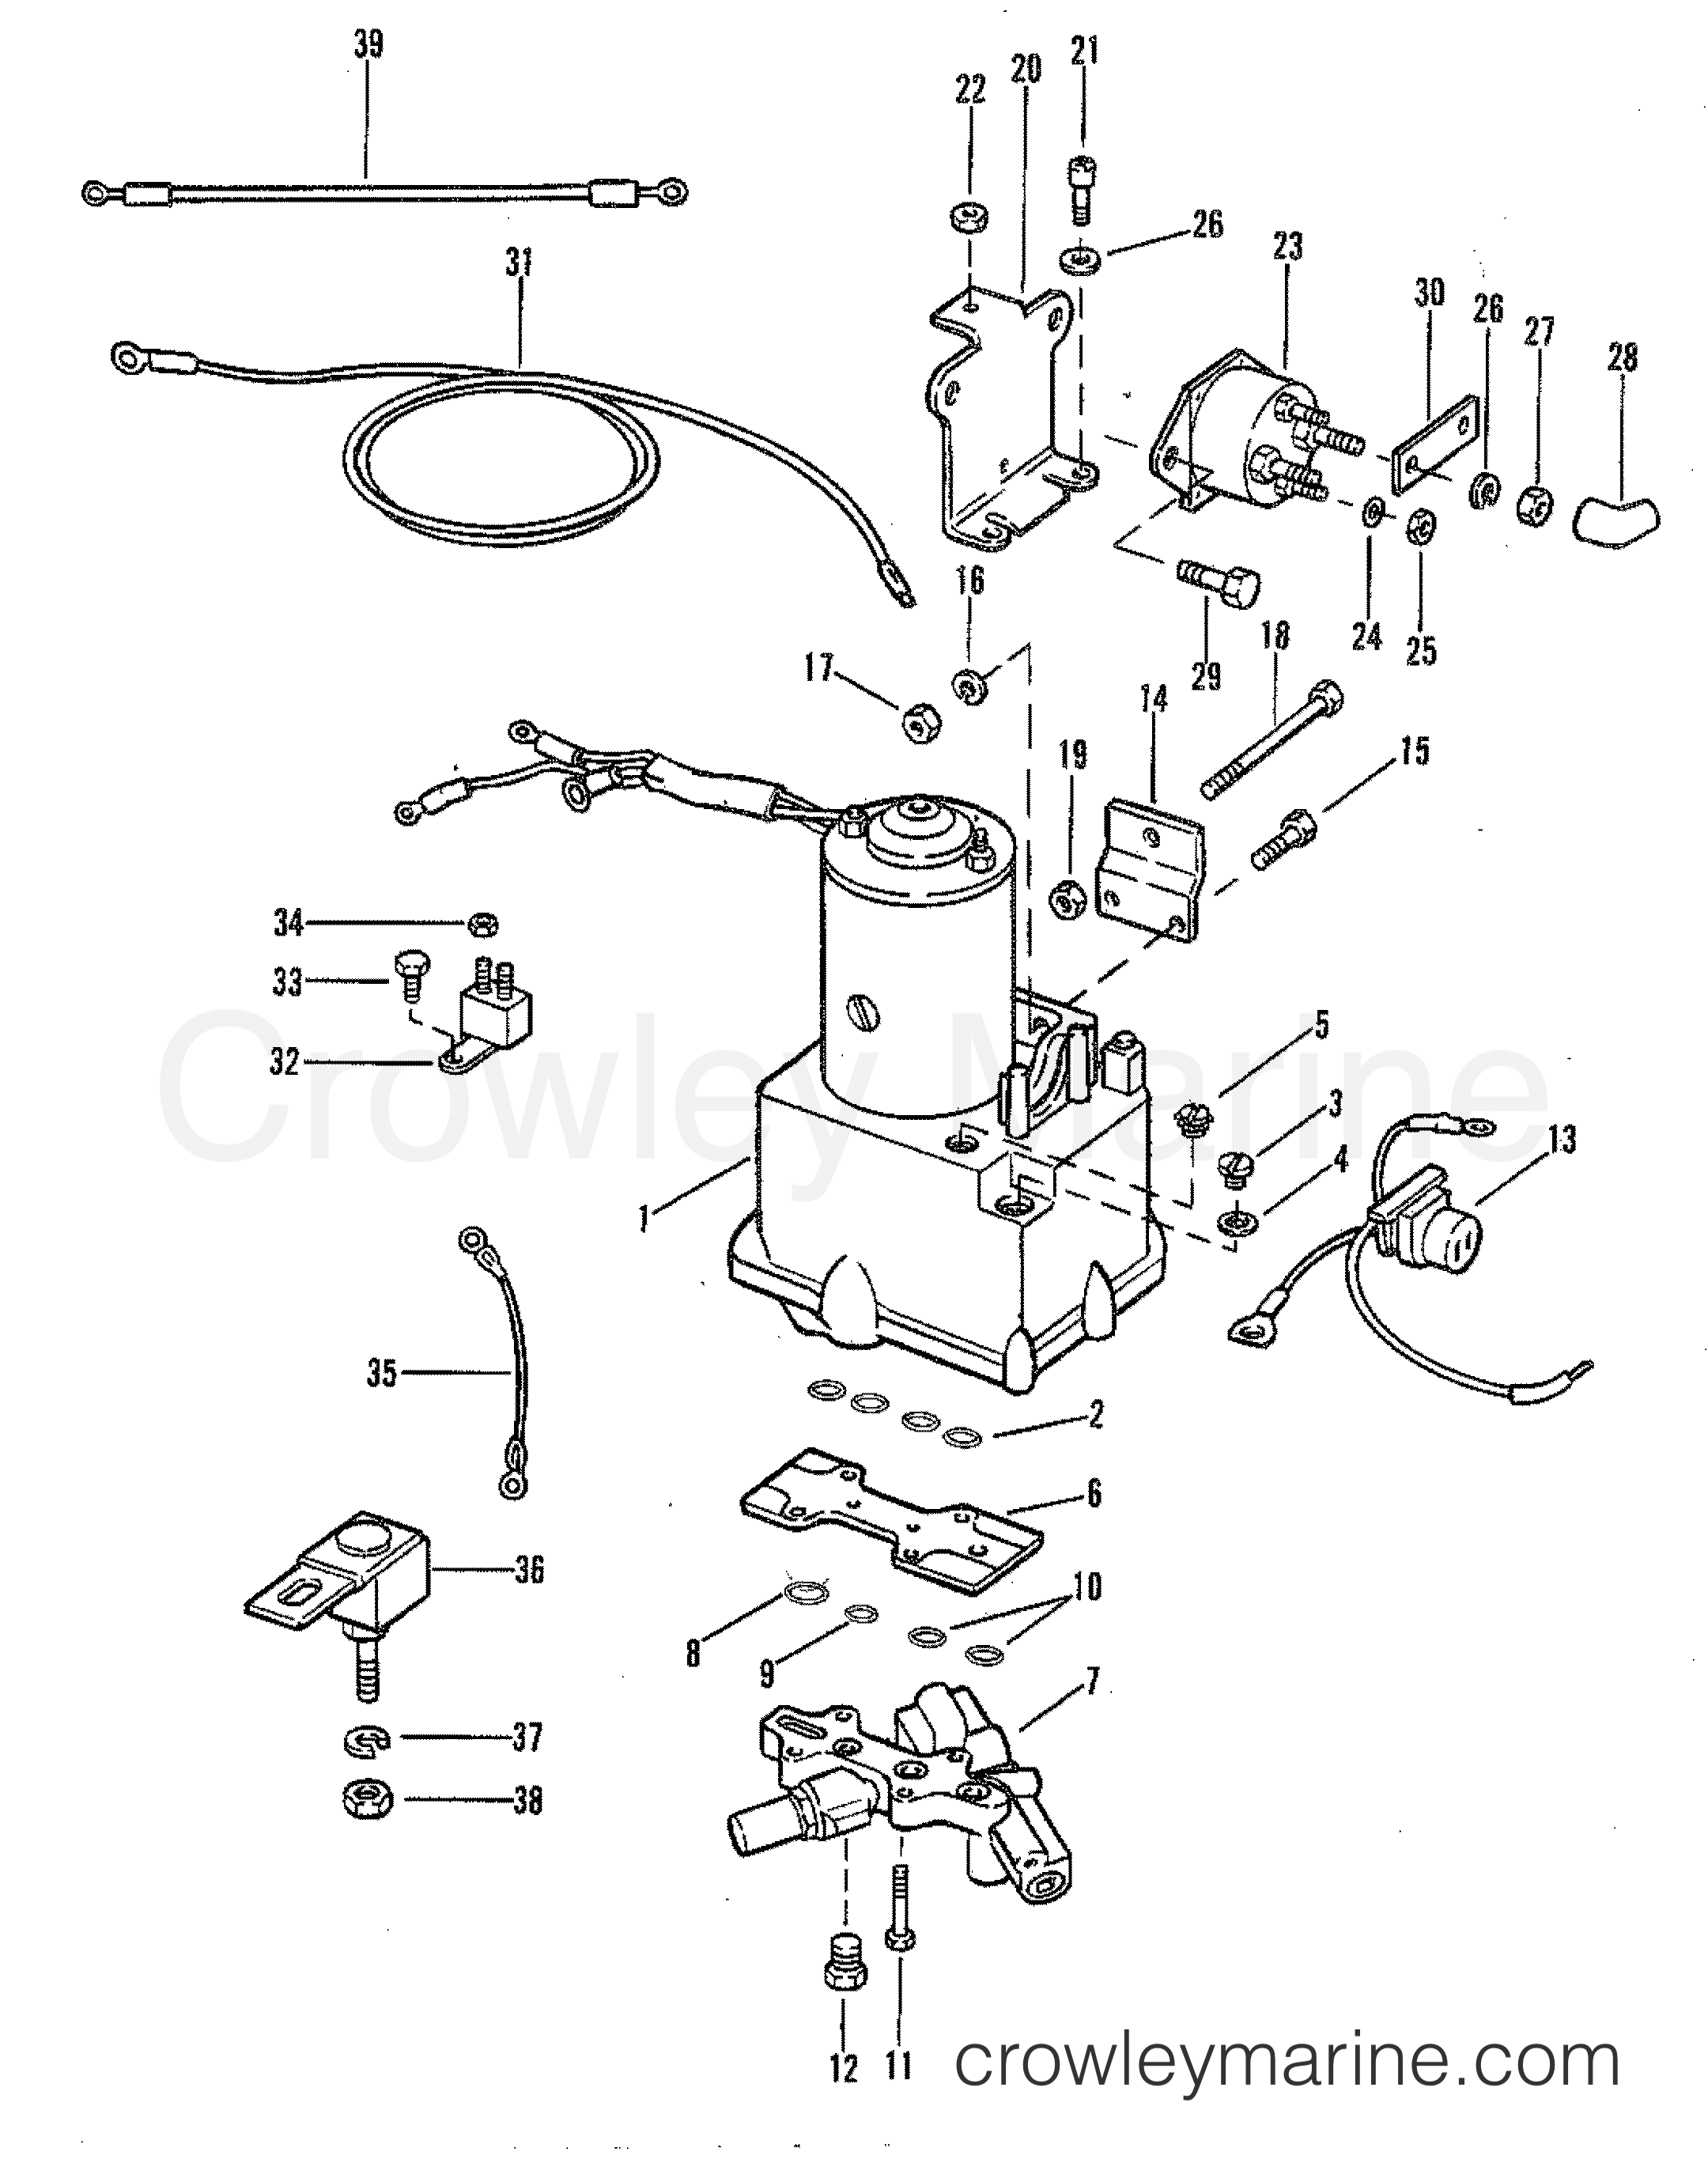 Mercury Outboard Power Trim Wiring Diagram : mercury, outboard, power, wiring, diagram, POWER, COMPONENTS, (WITH, CIRCUIT, BREAKER, FUSE), Mercury, Outboard, [ELPT], 1090620, Crowley, Marine